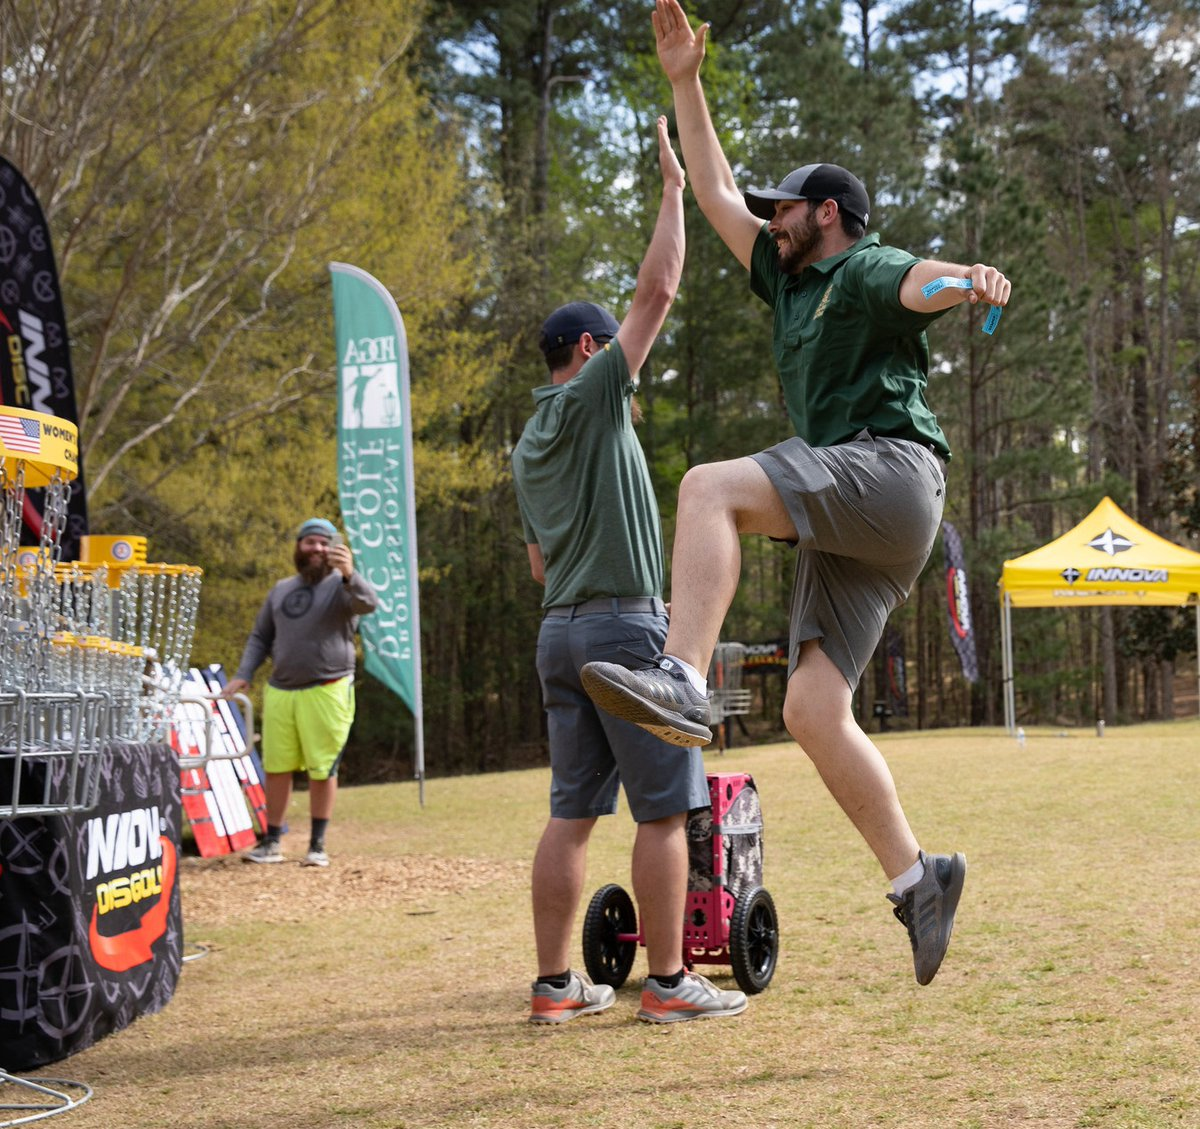 #FUNDAYFRIDAY!!  How are you planning to enjoy your weekend? Tell us about where you're playing.  #collegediscgolf #cdgnc #ncdgc #discgolf #innovadiscs #pdga #mvpdiscs #discmania #dynamicdiscs #discraft #prodigydiscs #discgolfchampionship #collegesports #collegechampionship pic.twitter.com/A9arv8F7zd